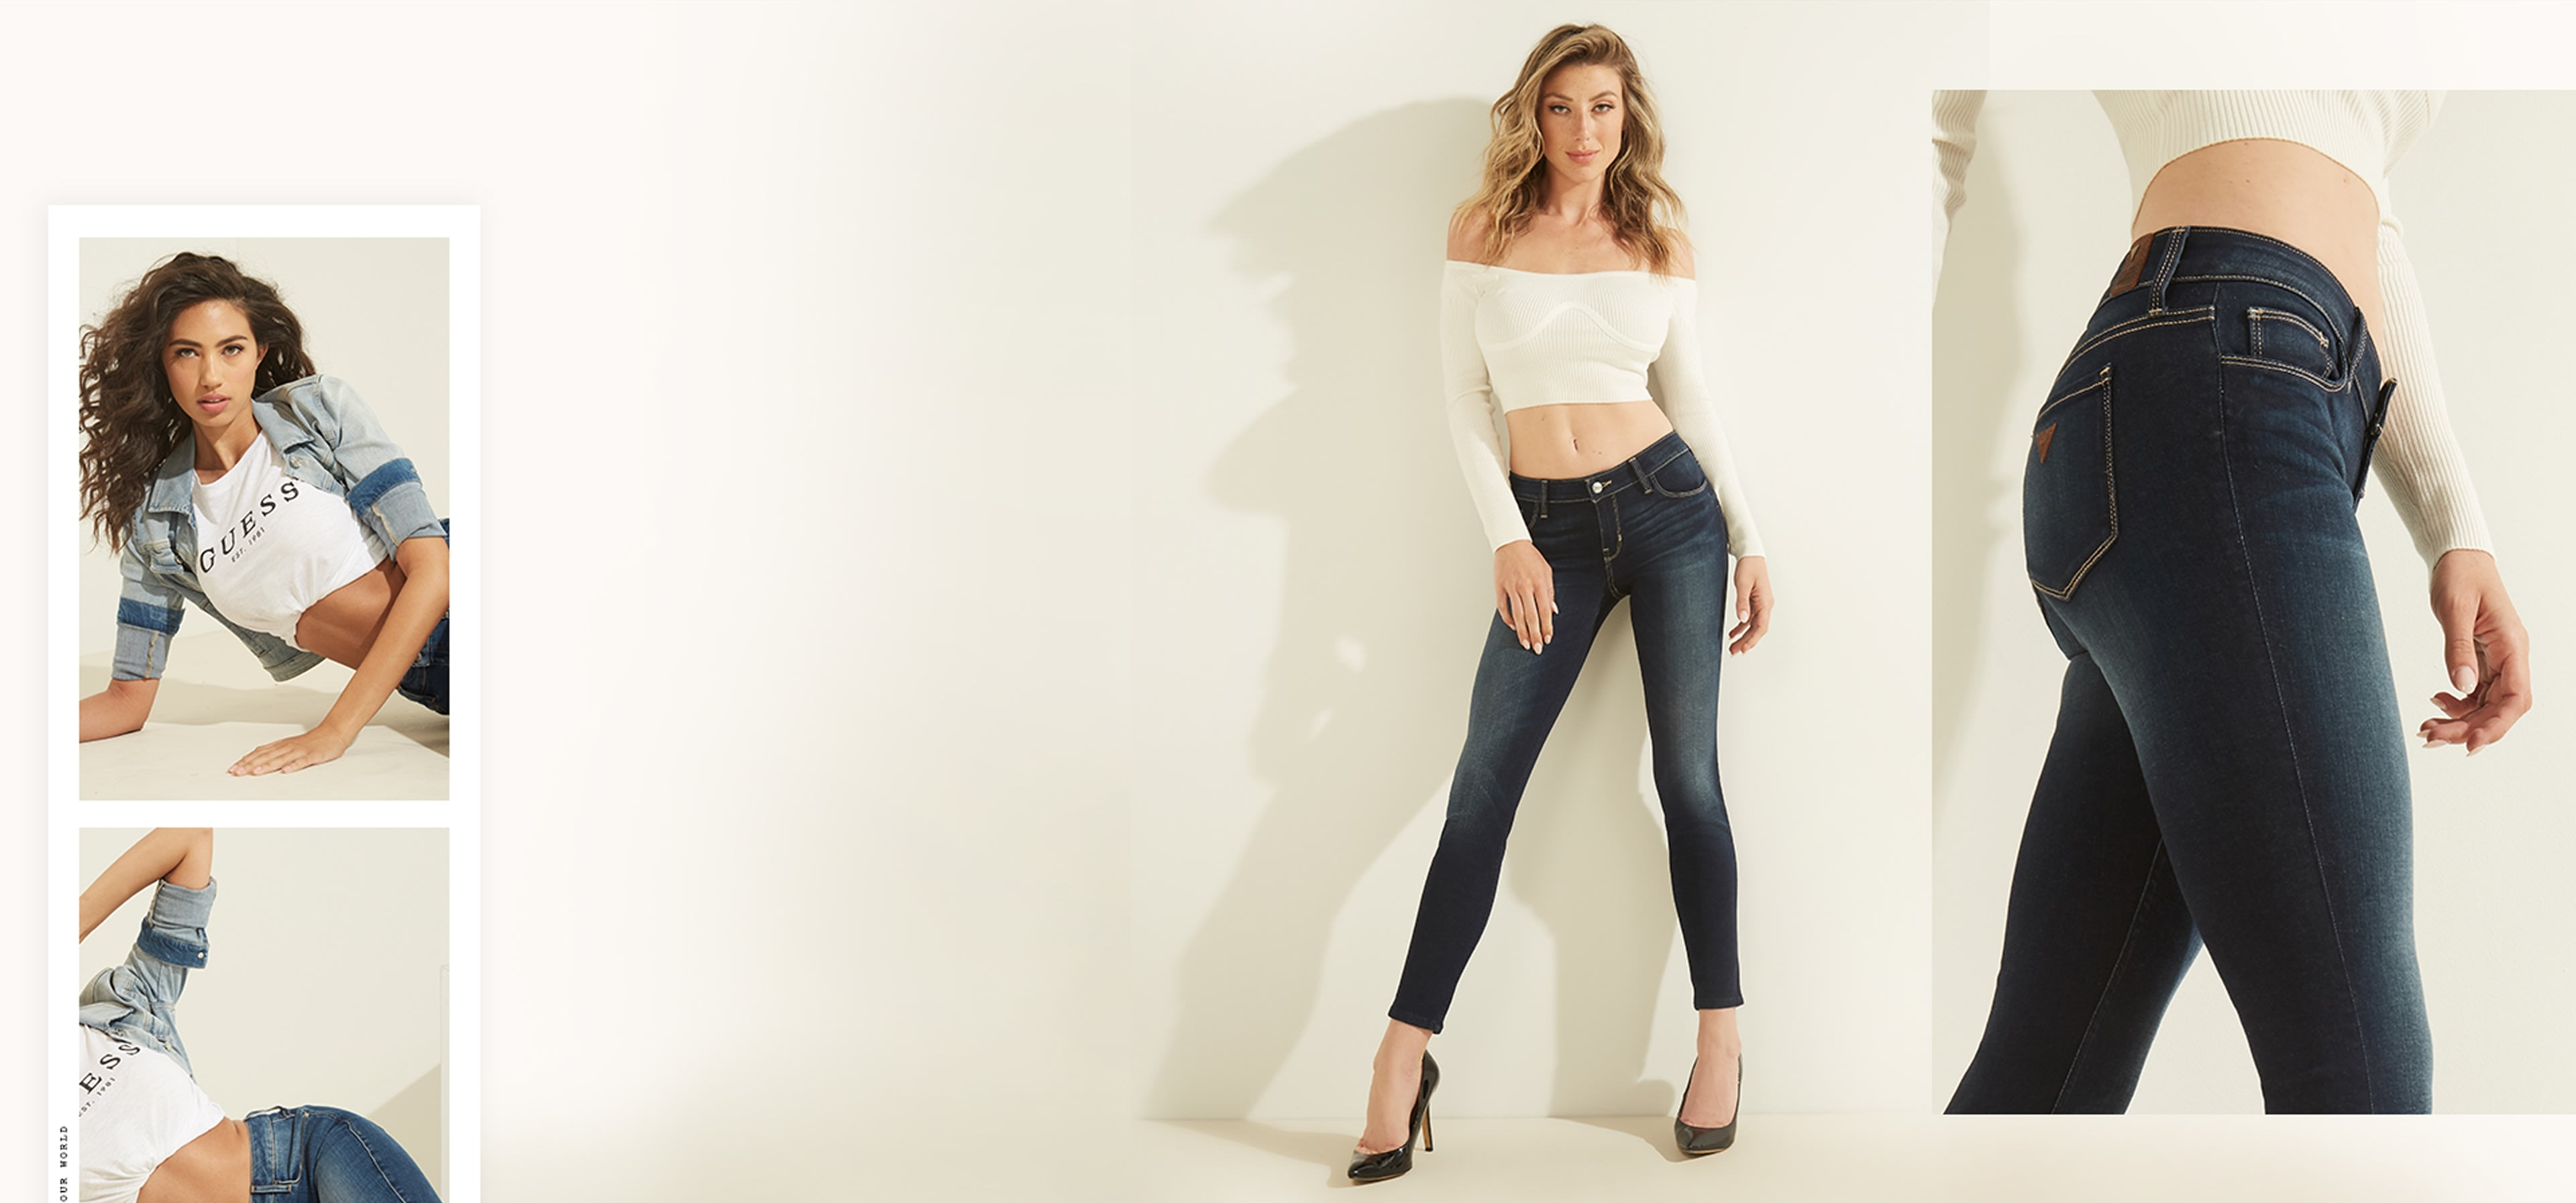 Power skinny jeans for women